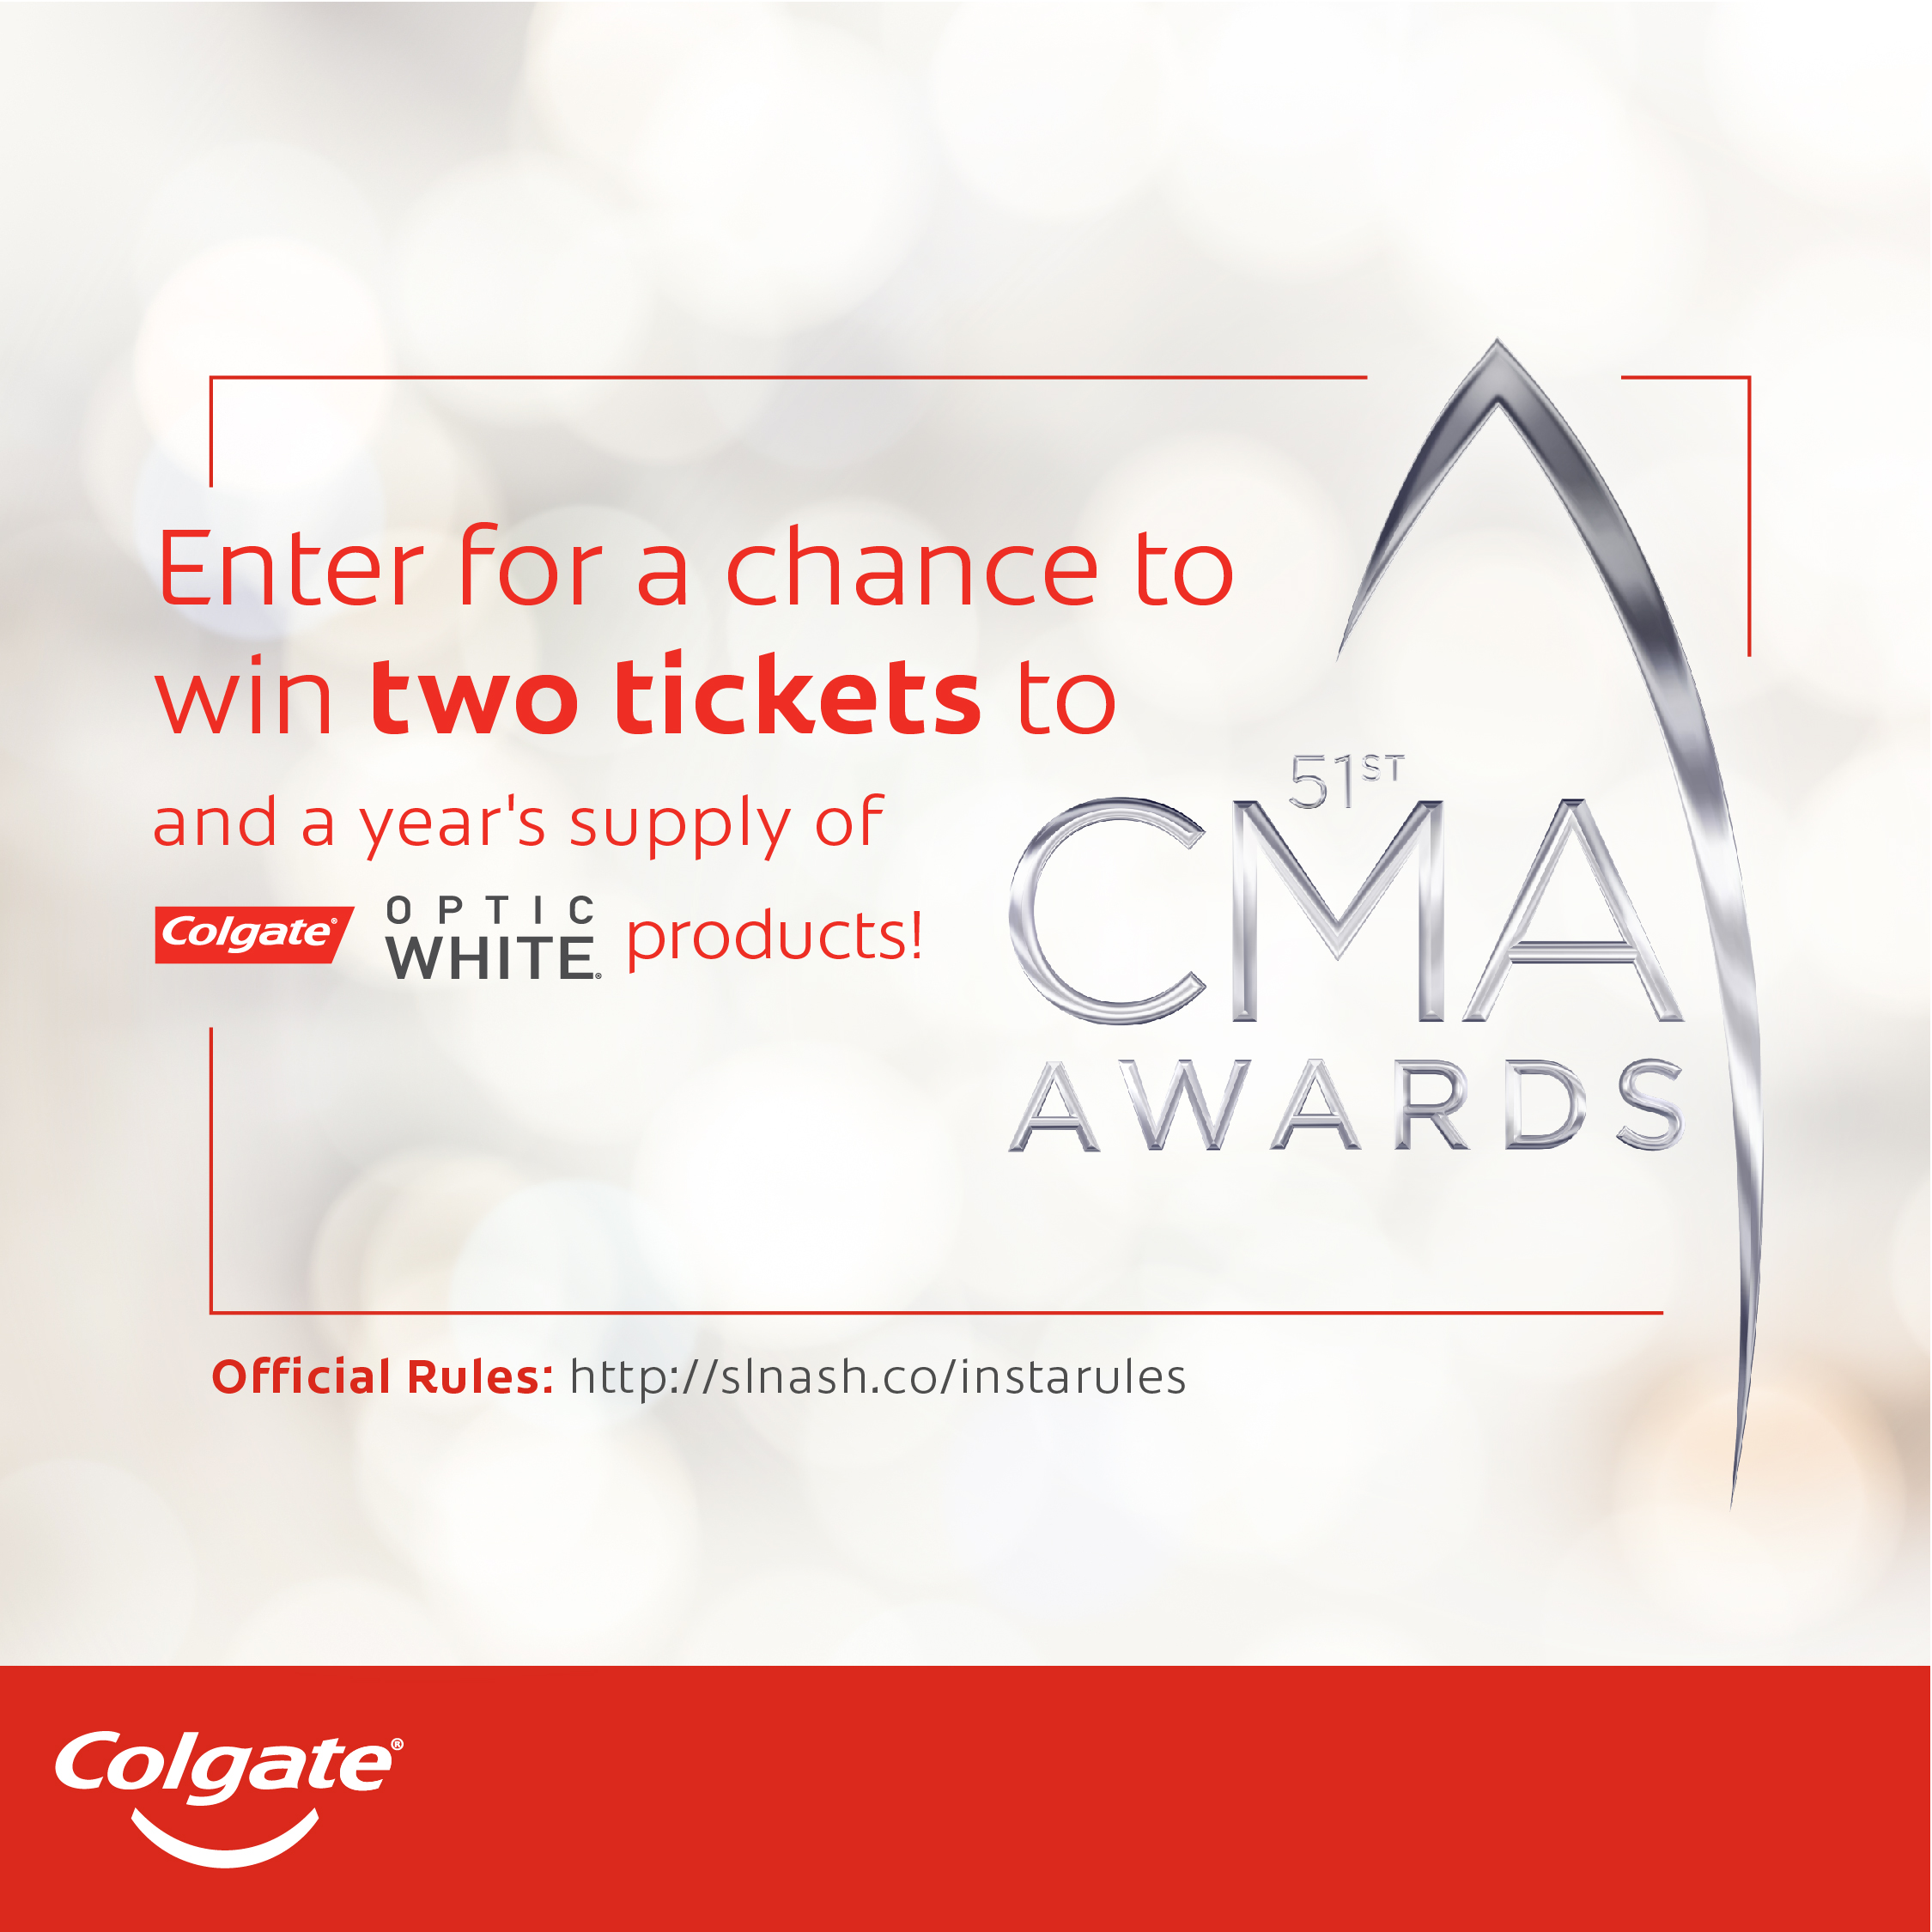 Enter for a Chance To Win Two Tickets to the CMA Awards and a Year's Supply of Colgate Optic White!